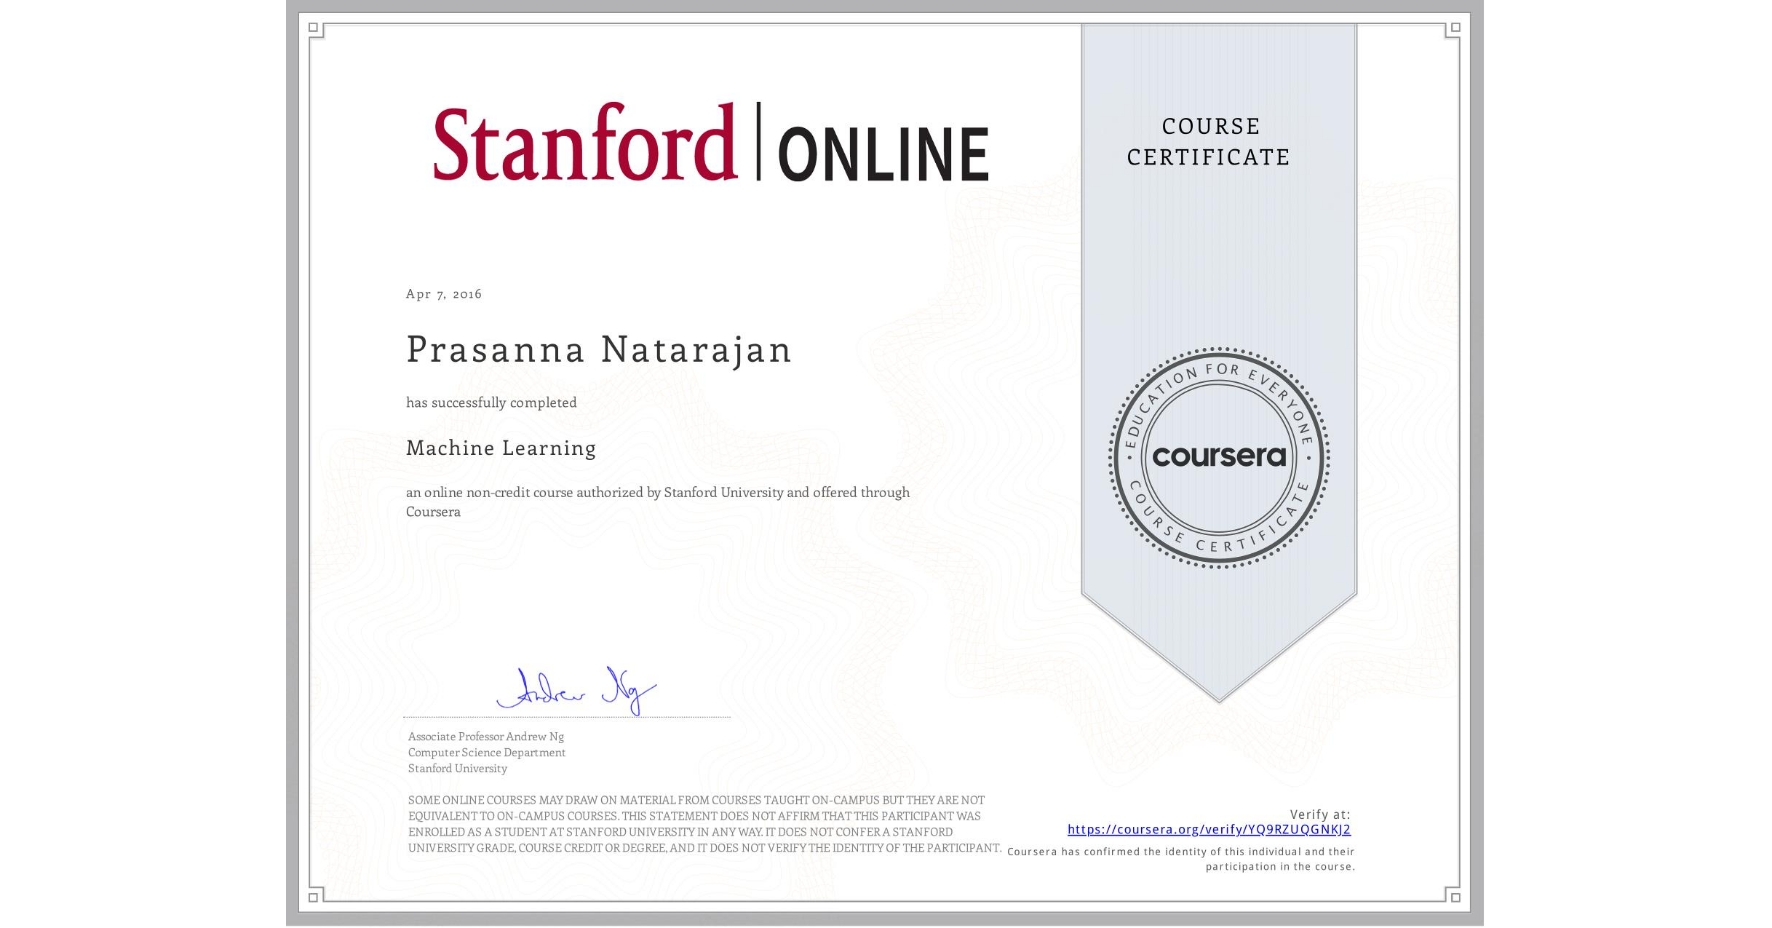 View certificate for Prasanna Natarajan, Machine Learning, an online non-credit course authorized by Stanford University and offered through Coursera